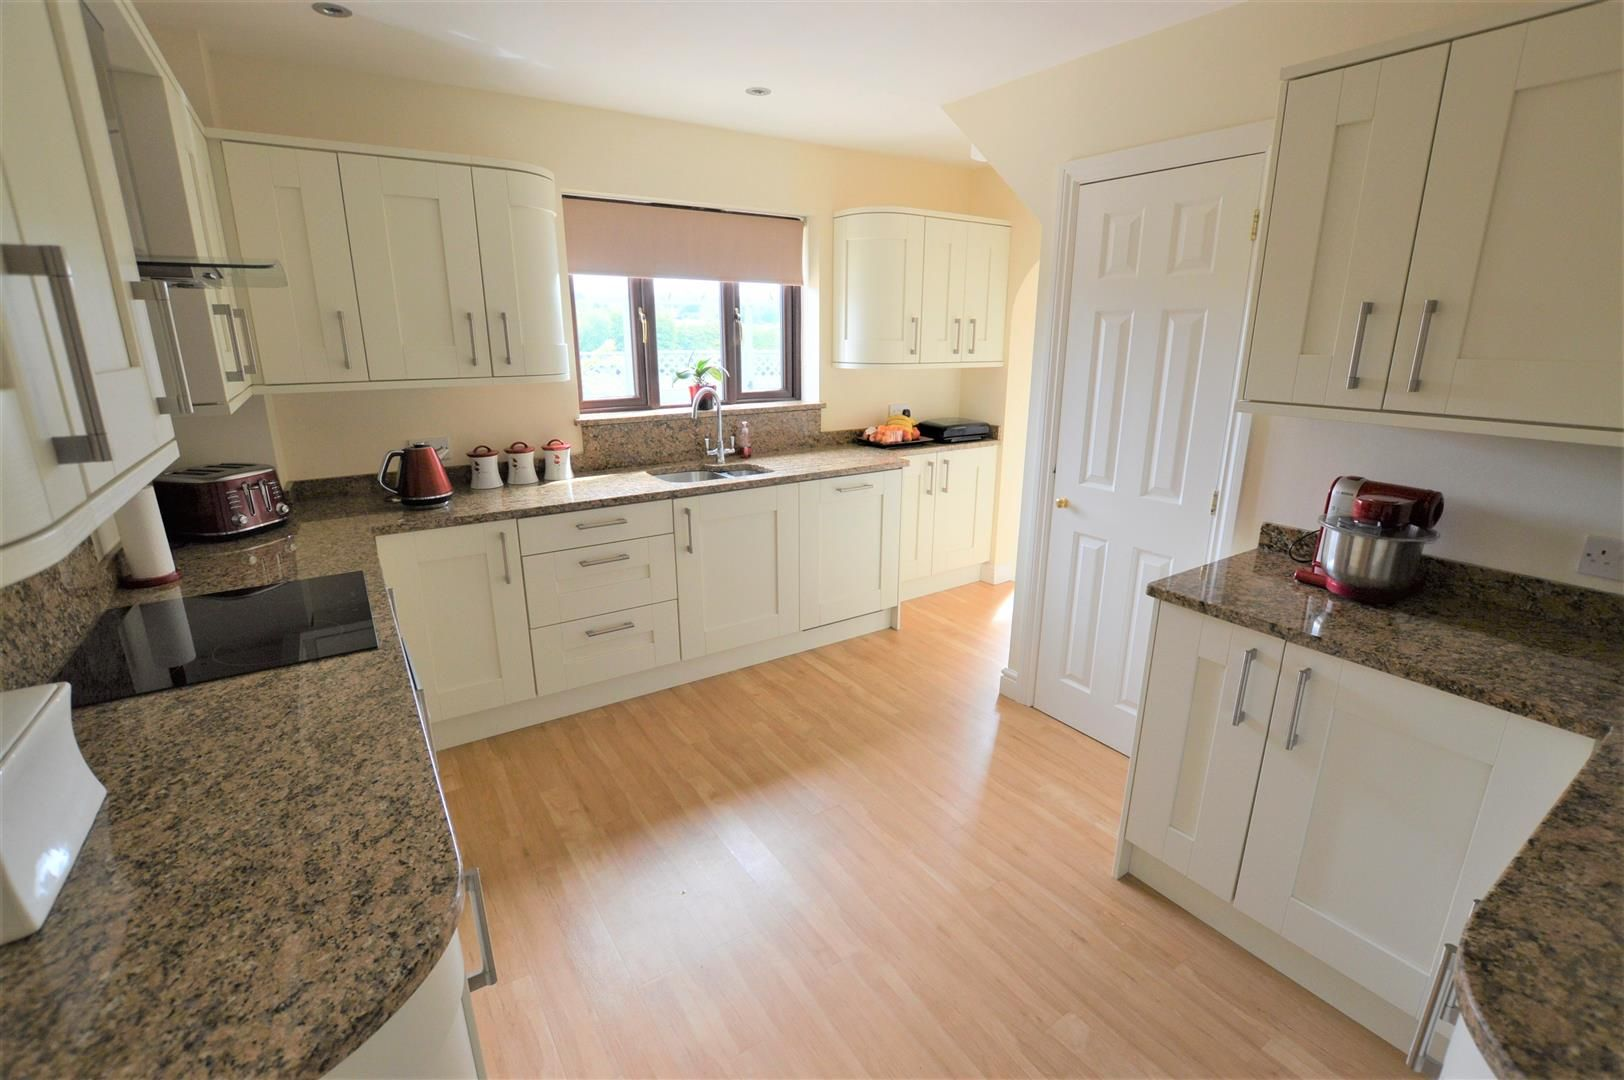 3 bed detached for sale in Kimbolton  - Property Image 3